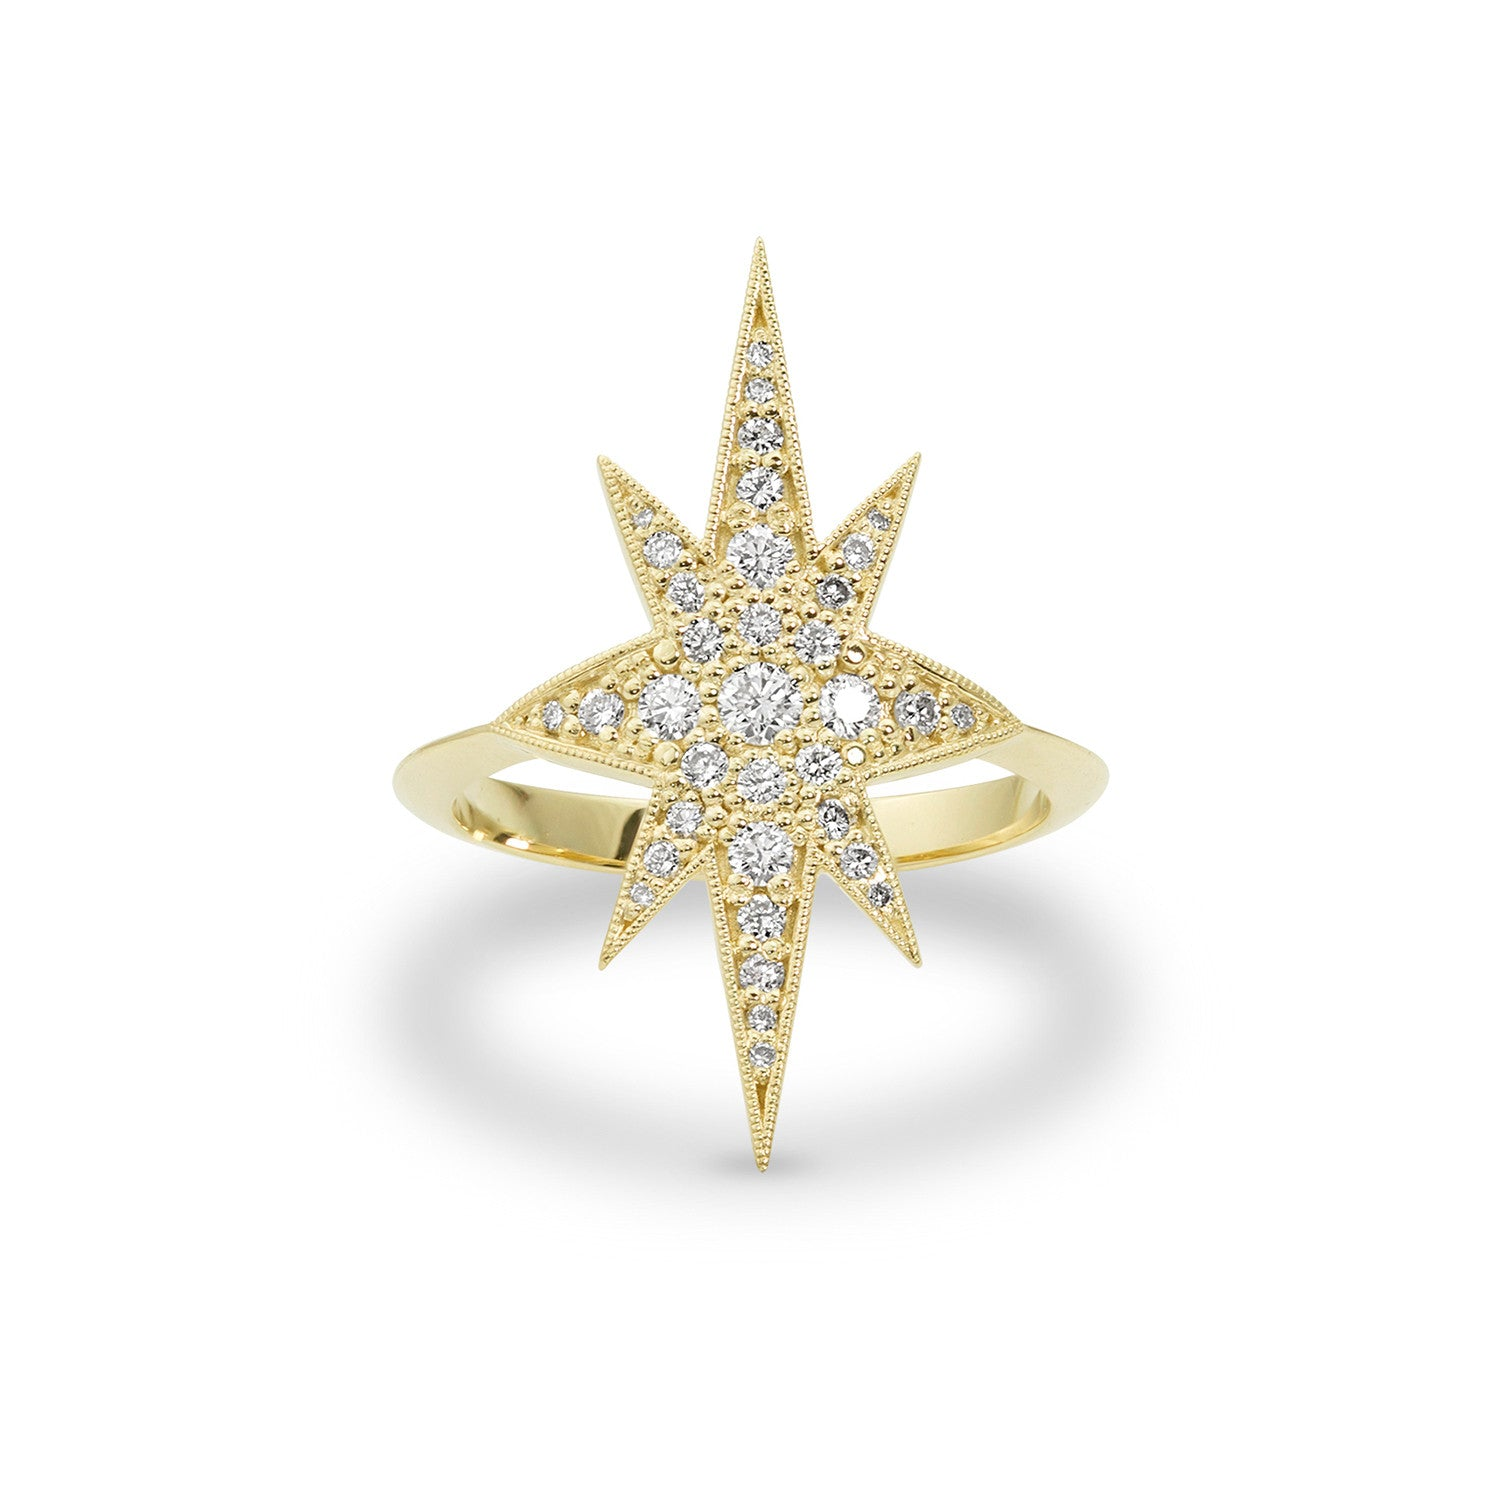 Gold Elongated Star Ring, Jewelry - Katherine & Josephine